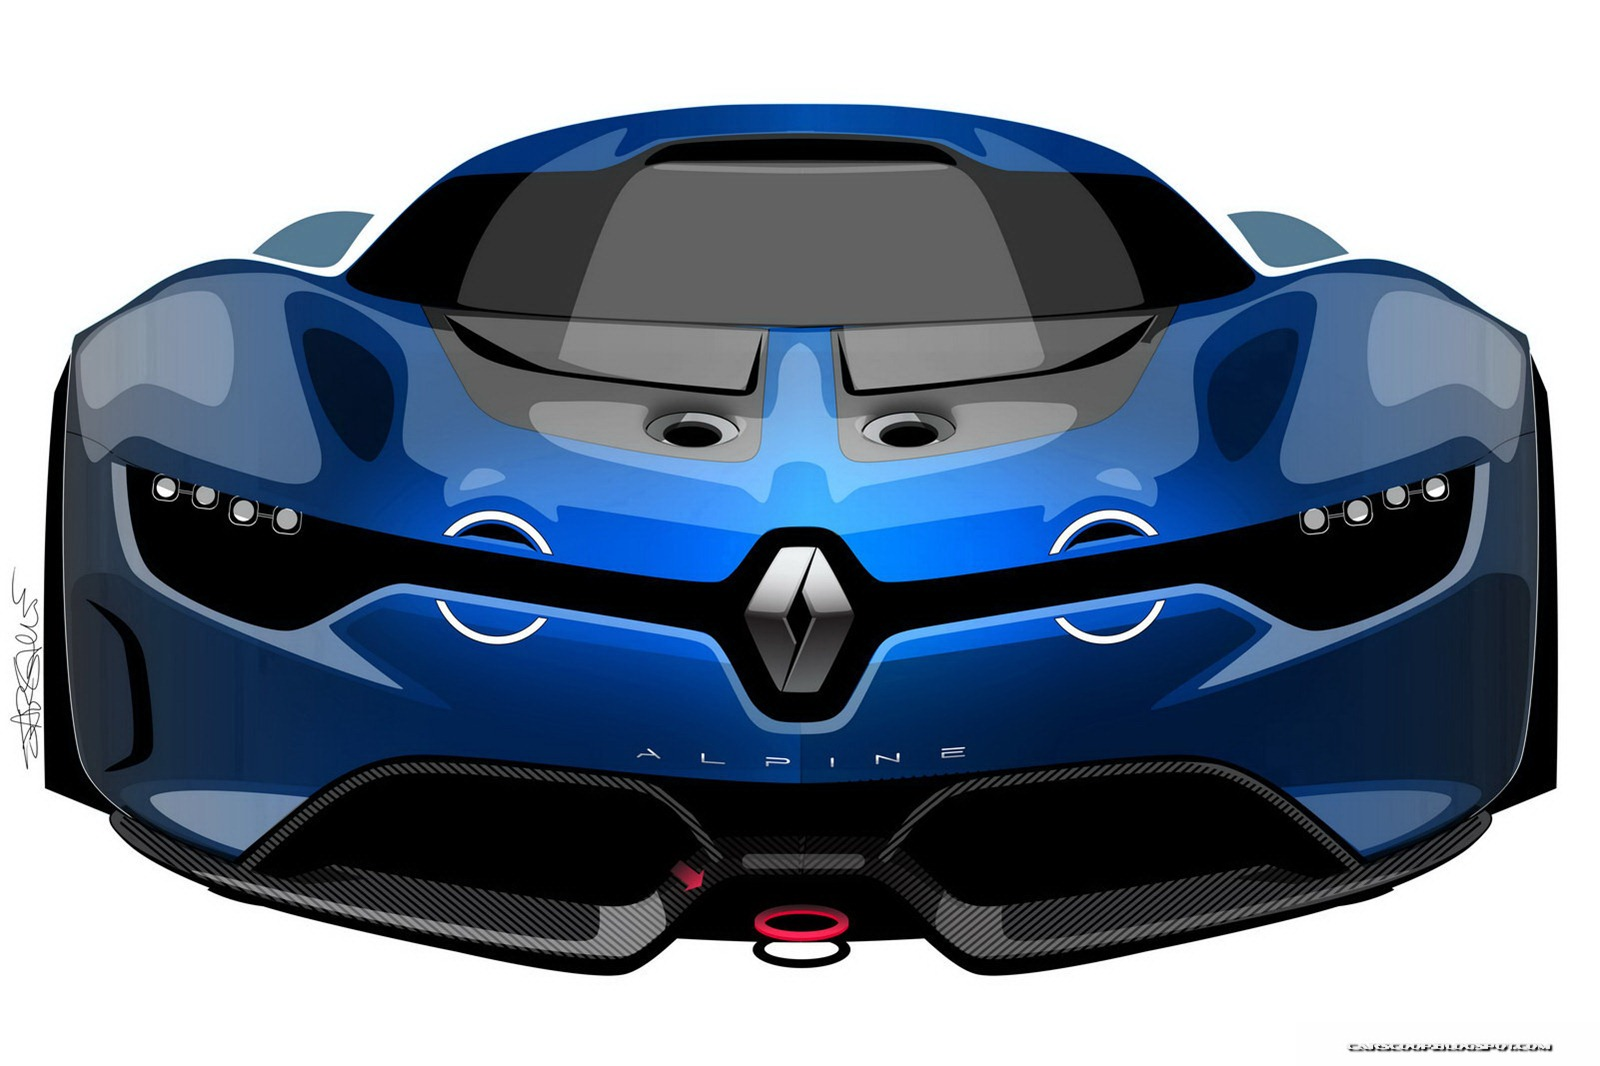 renault alpine konzept vektorgrafik - photo #15